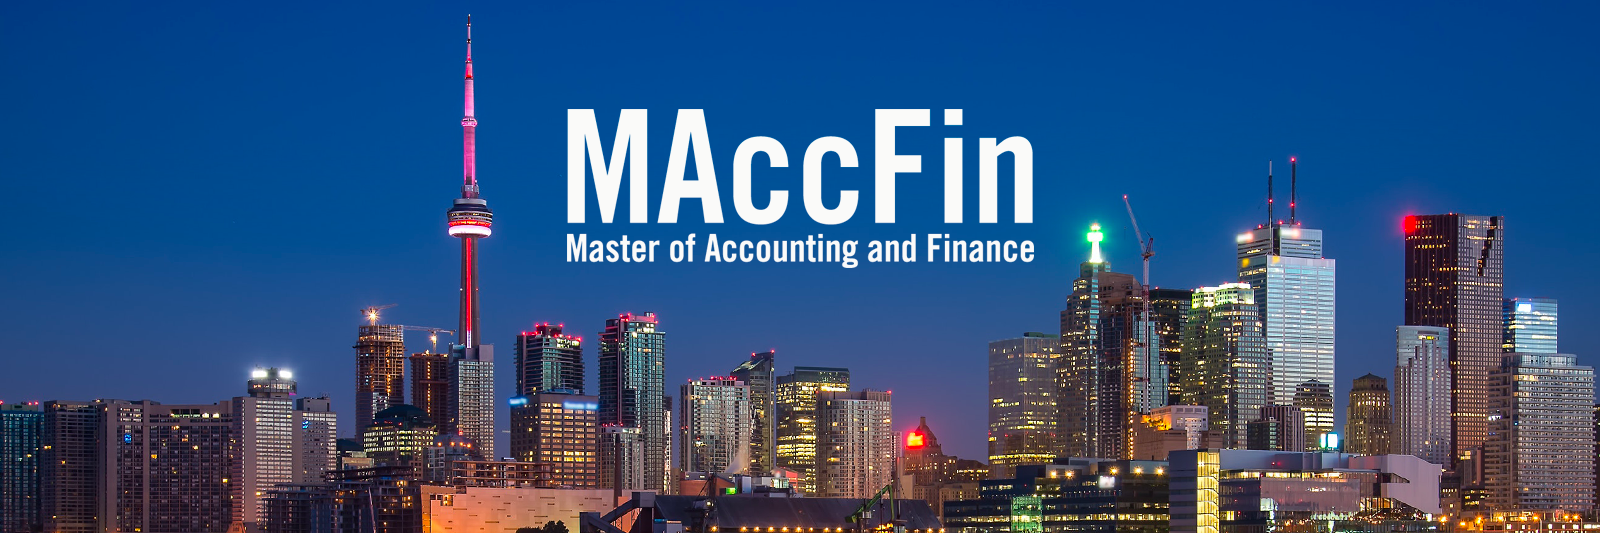 Master of Accounting and Finance (MAccFin)